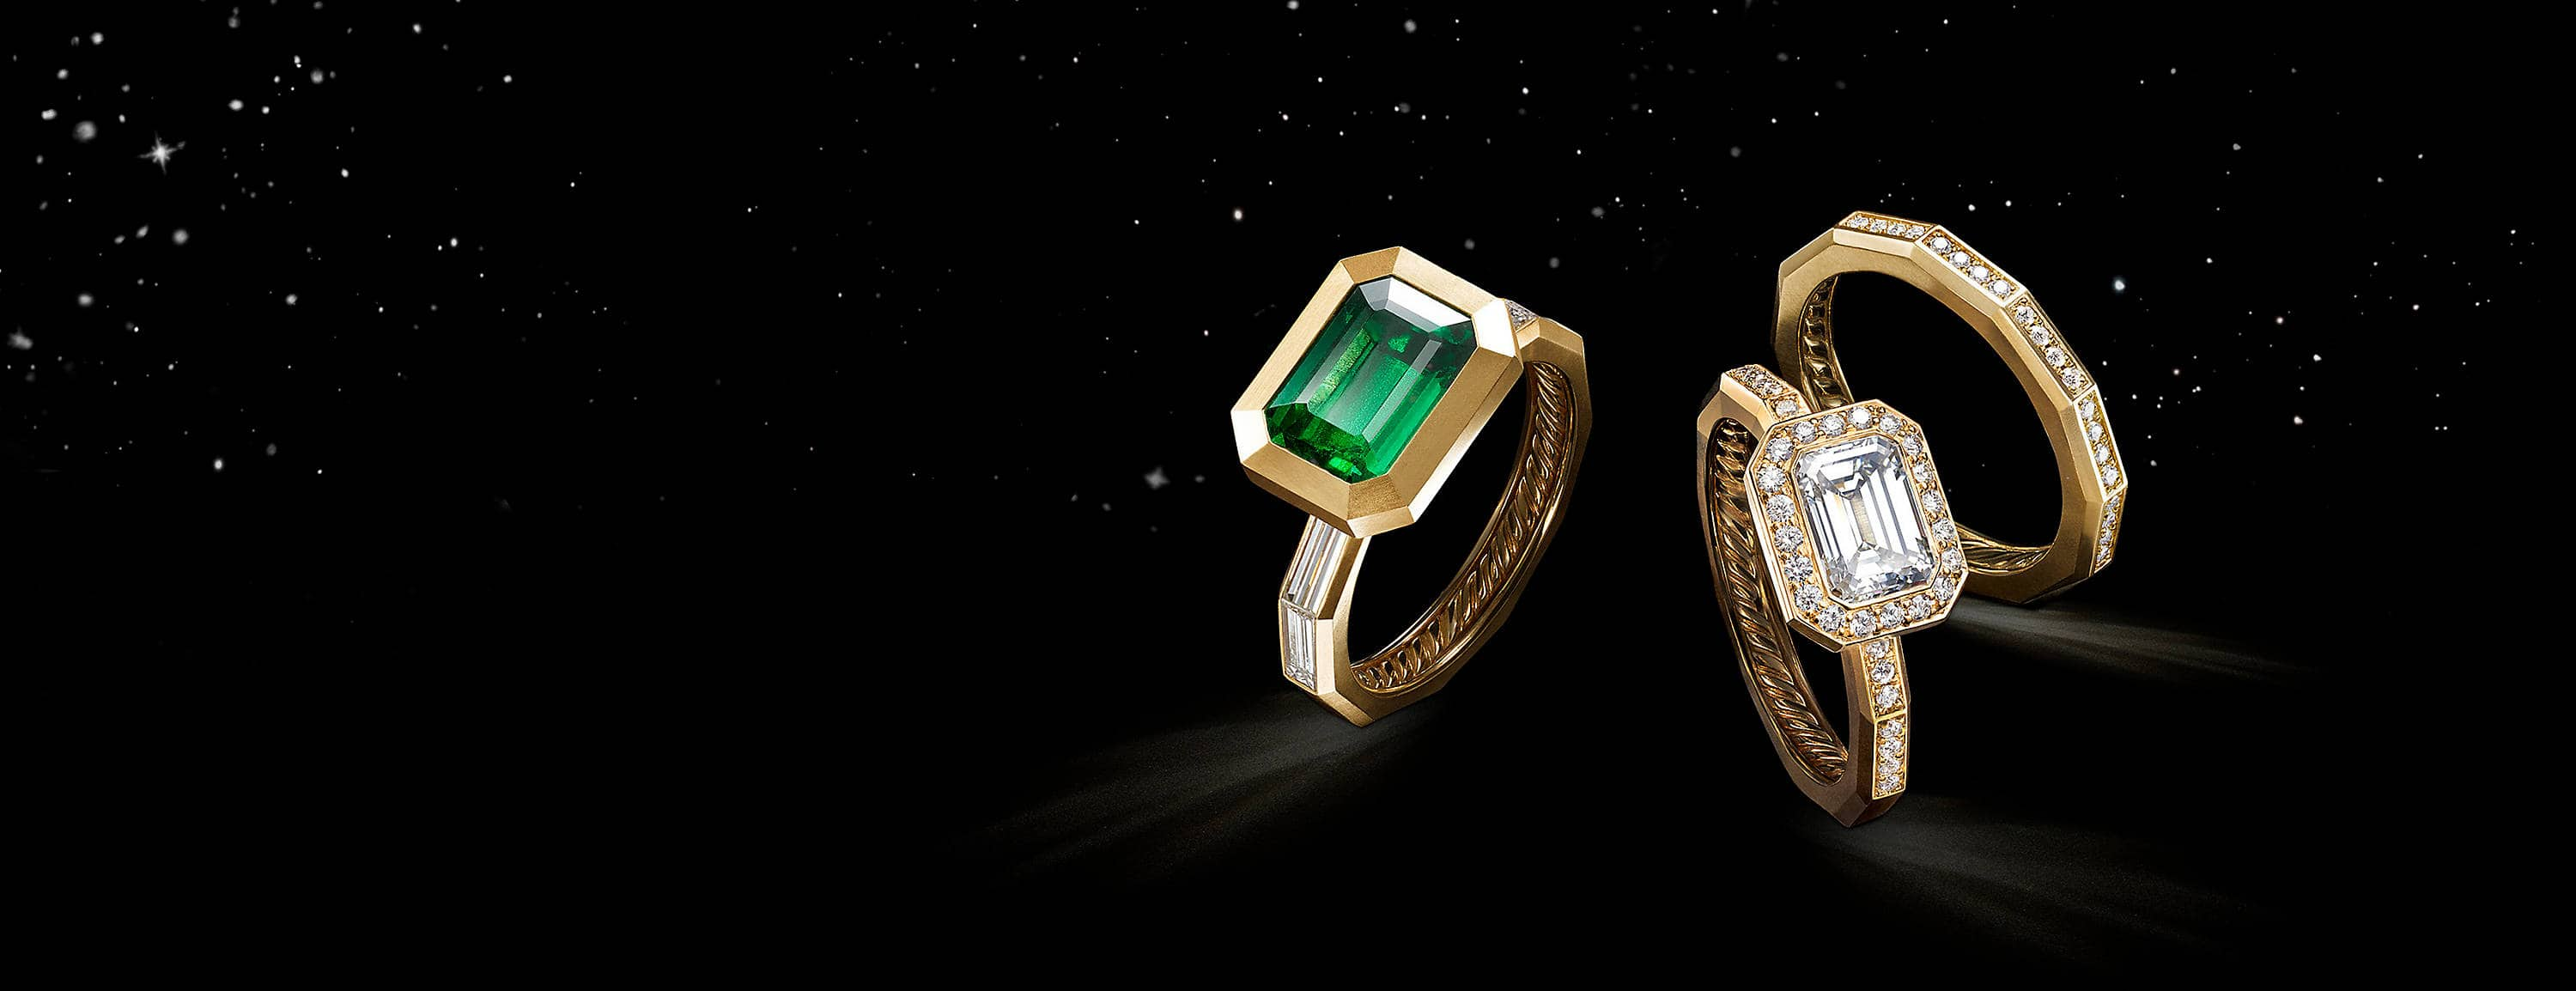 A color photo shows two David Yurman women's engagement rings next to a wedding band floating in front of a starry night sky. The jewelry is crafted from 18K yellow gold with or without an emerald or diamonds.